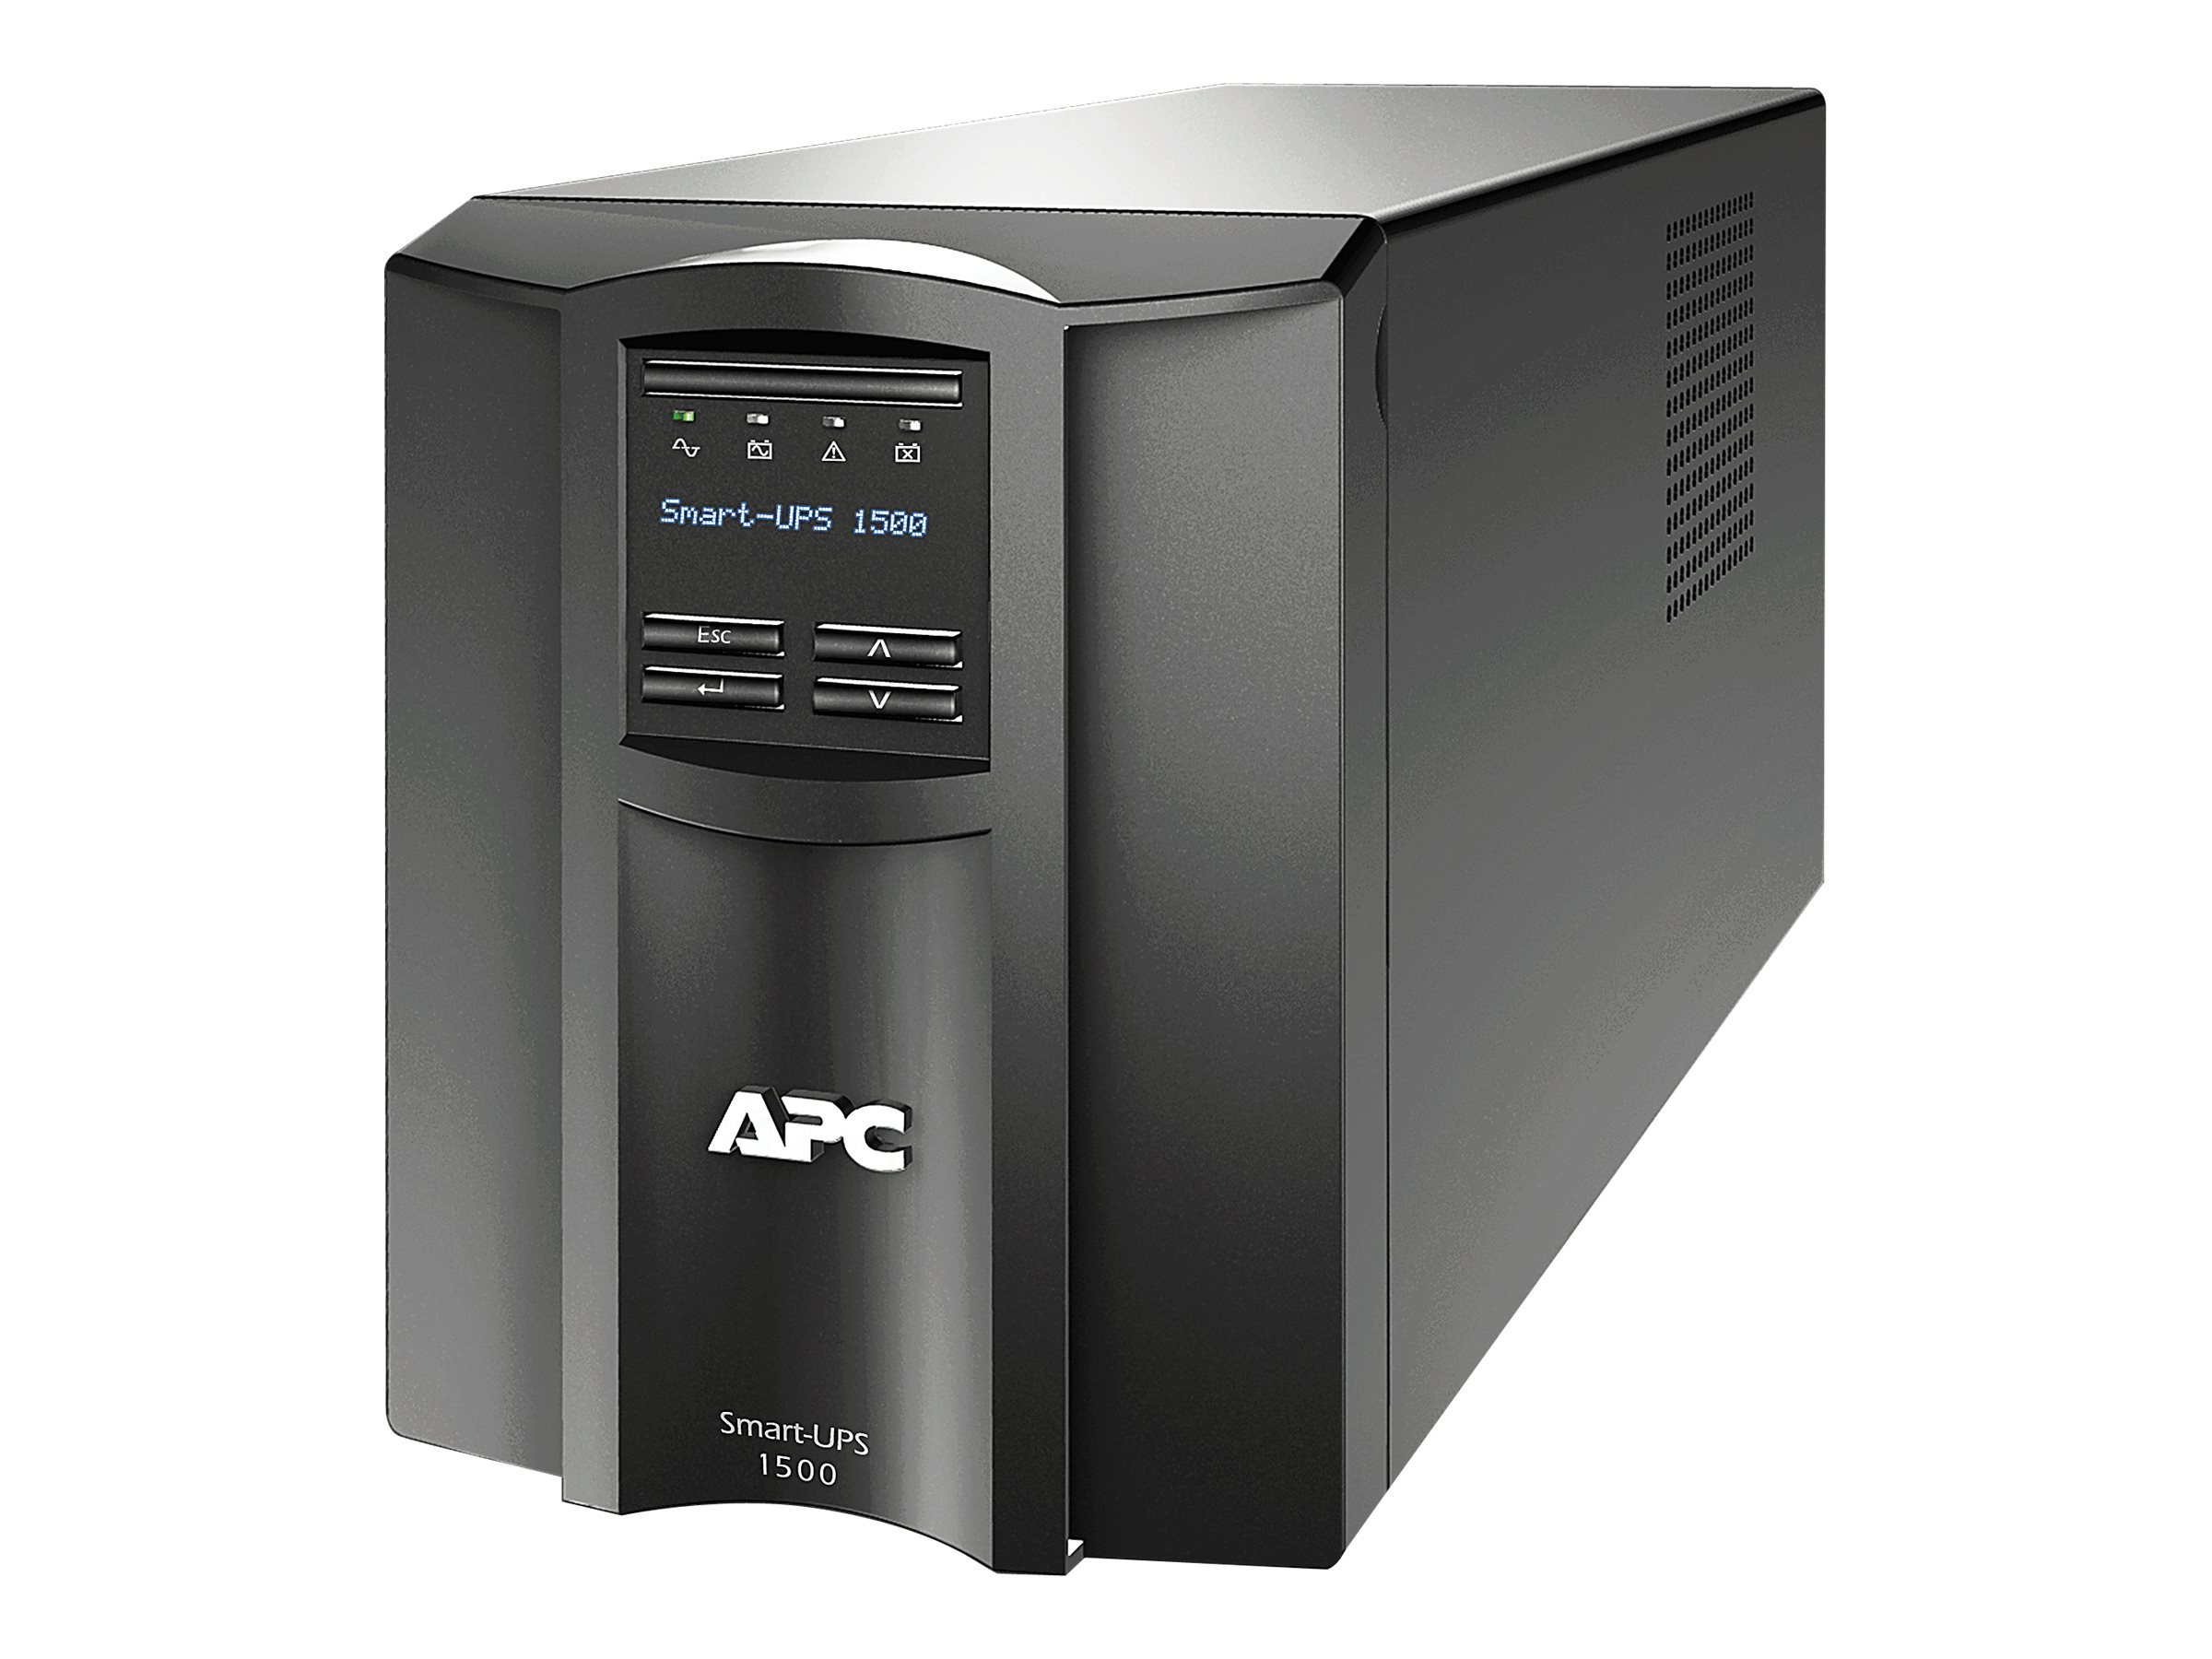 APC Smart-UPS 1500VA 980W 120V LCD Tower UPS (8) 5-15R Outlets USB Serial, Instant Rebate - Save $15, SMT1500